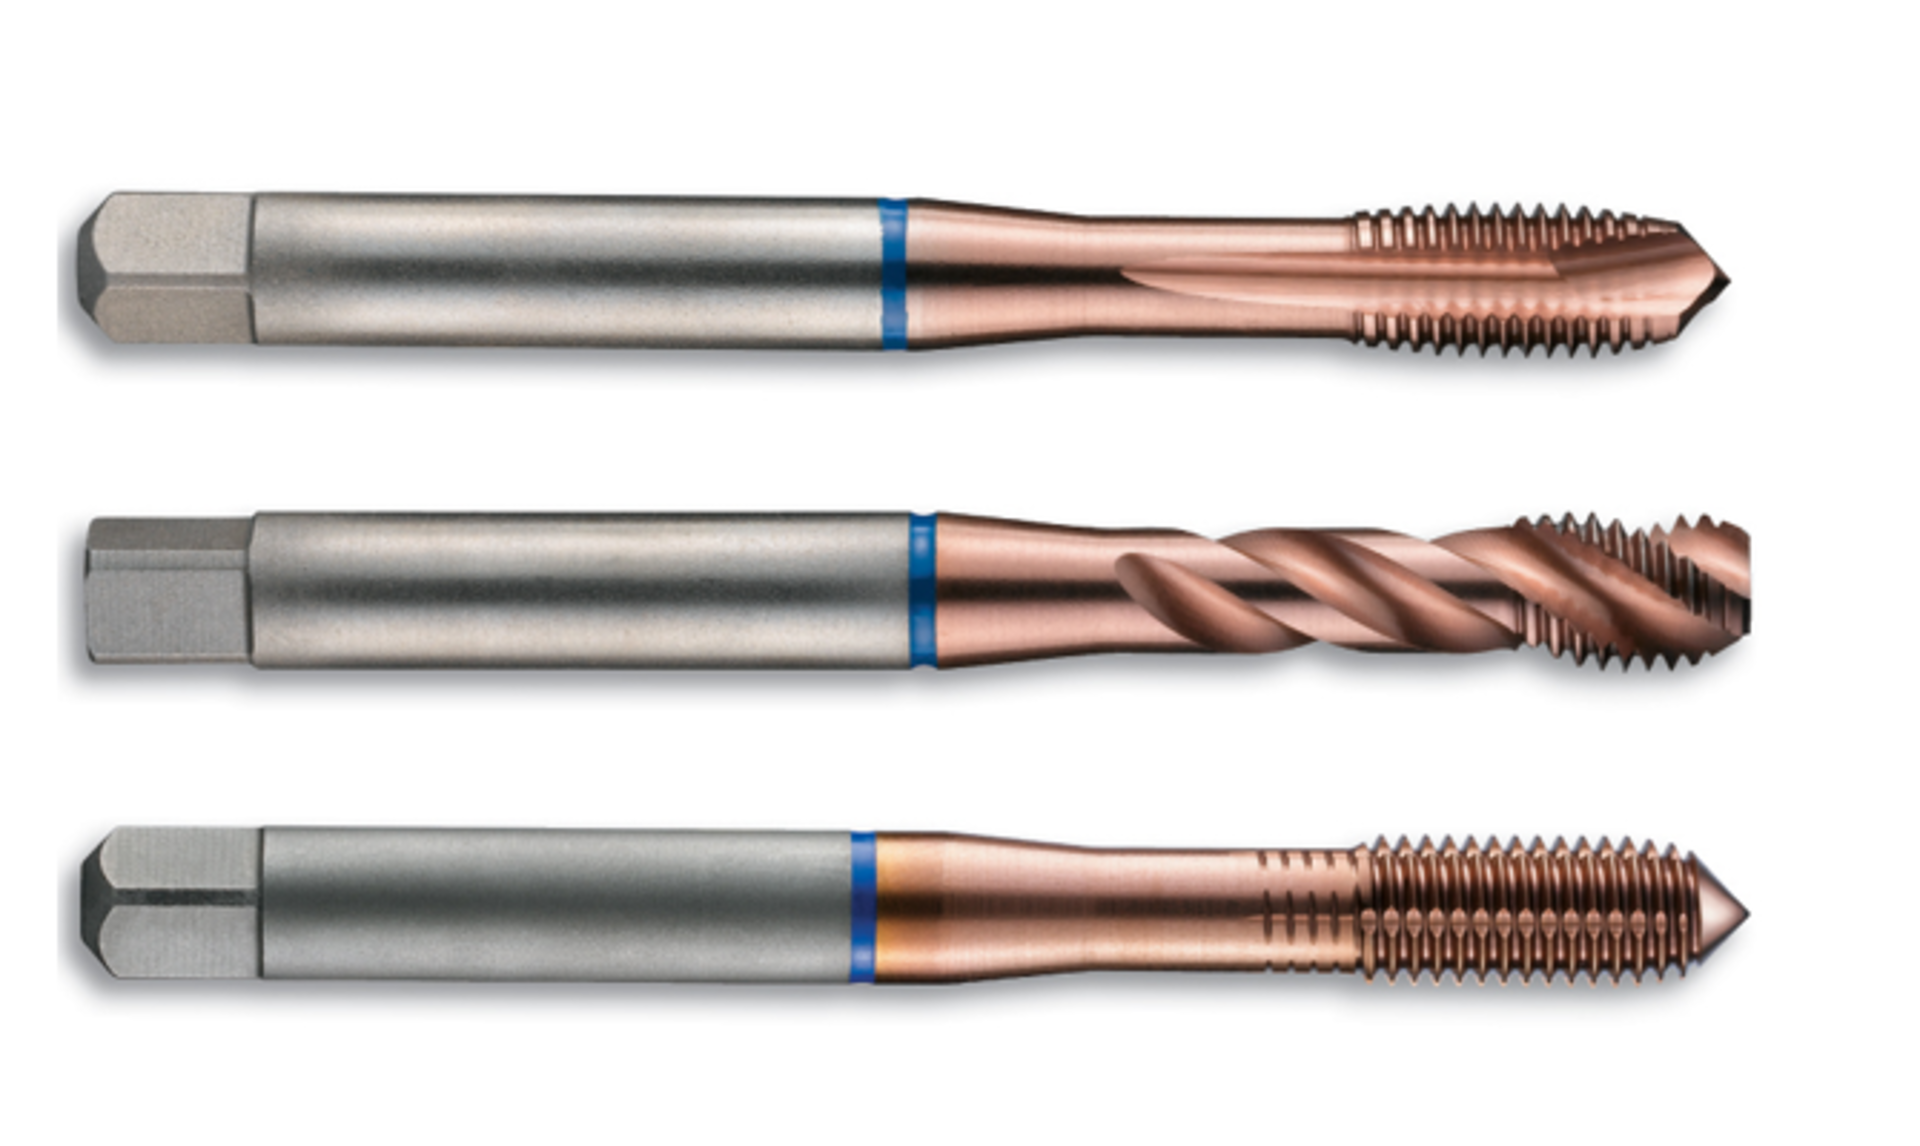 Storage building tool cutting drills, taps, dies, countersinks, reamers and milling cutters